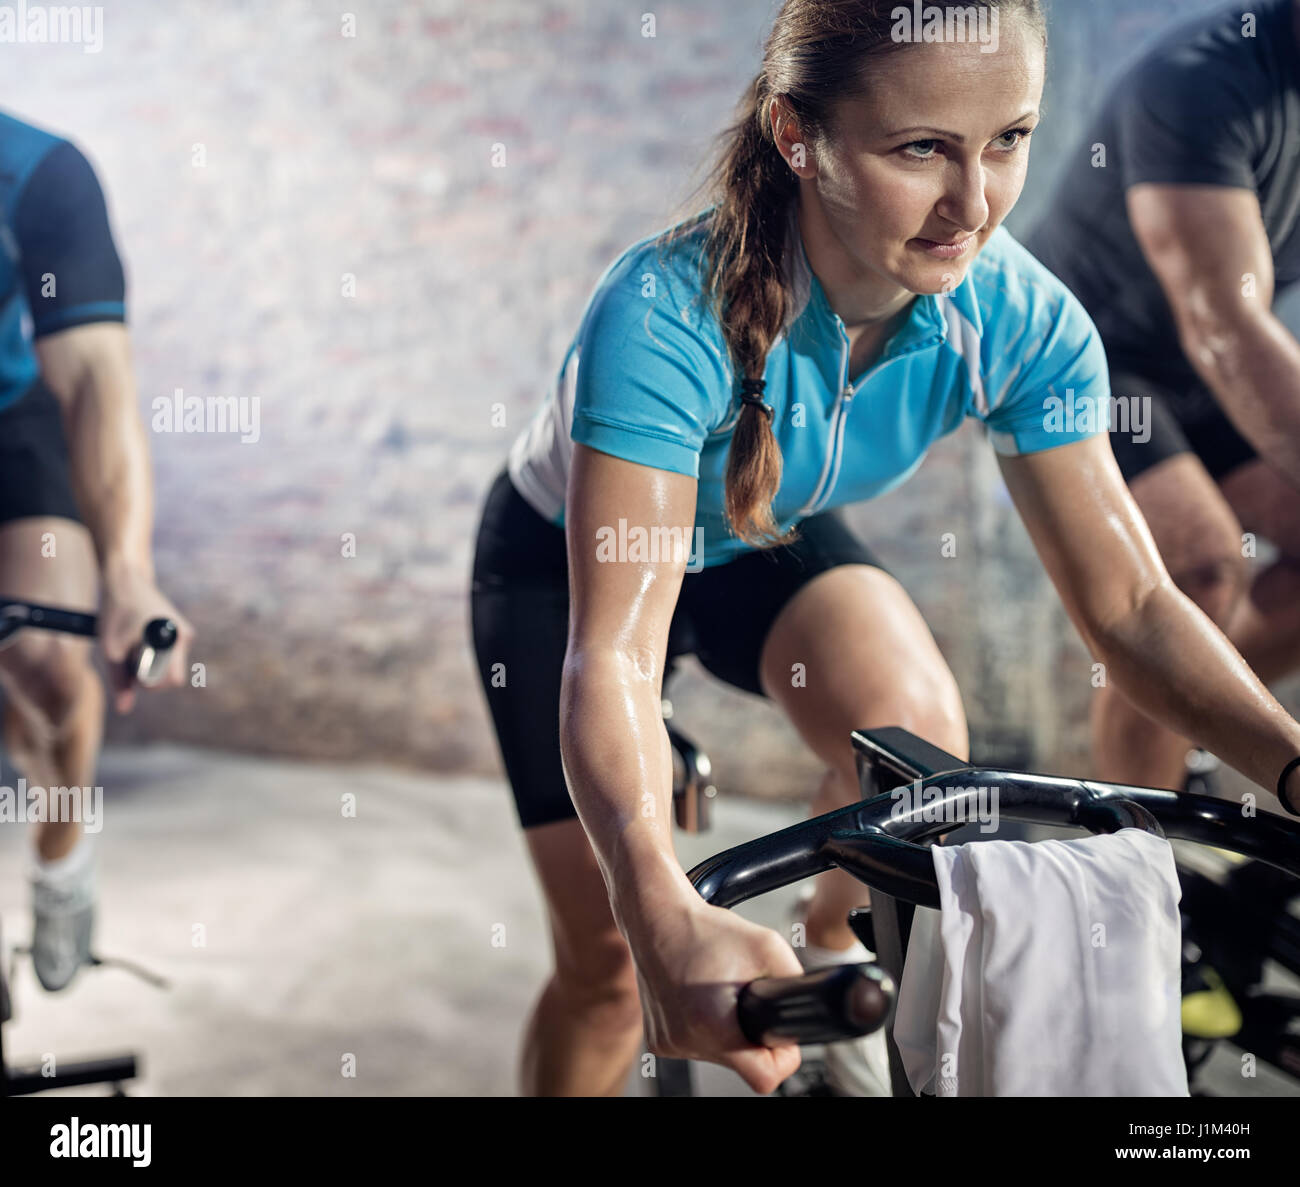 Woman on cardio exercising on bike, training, sport and healthy lifestyle - Stock Image